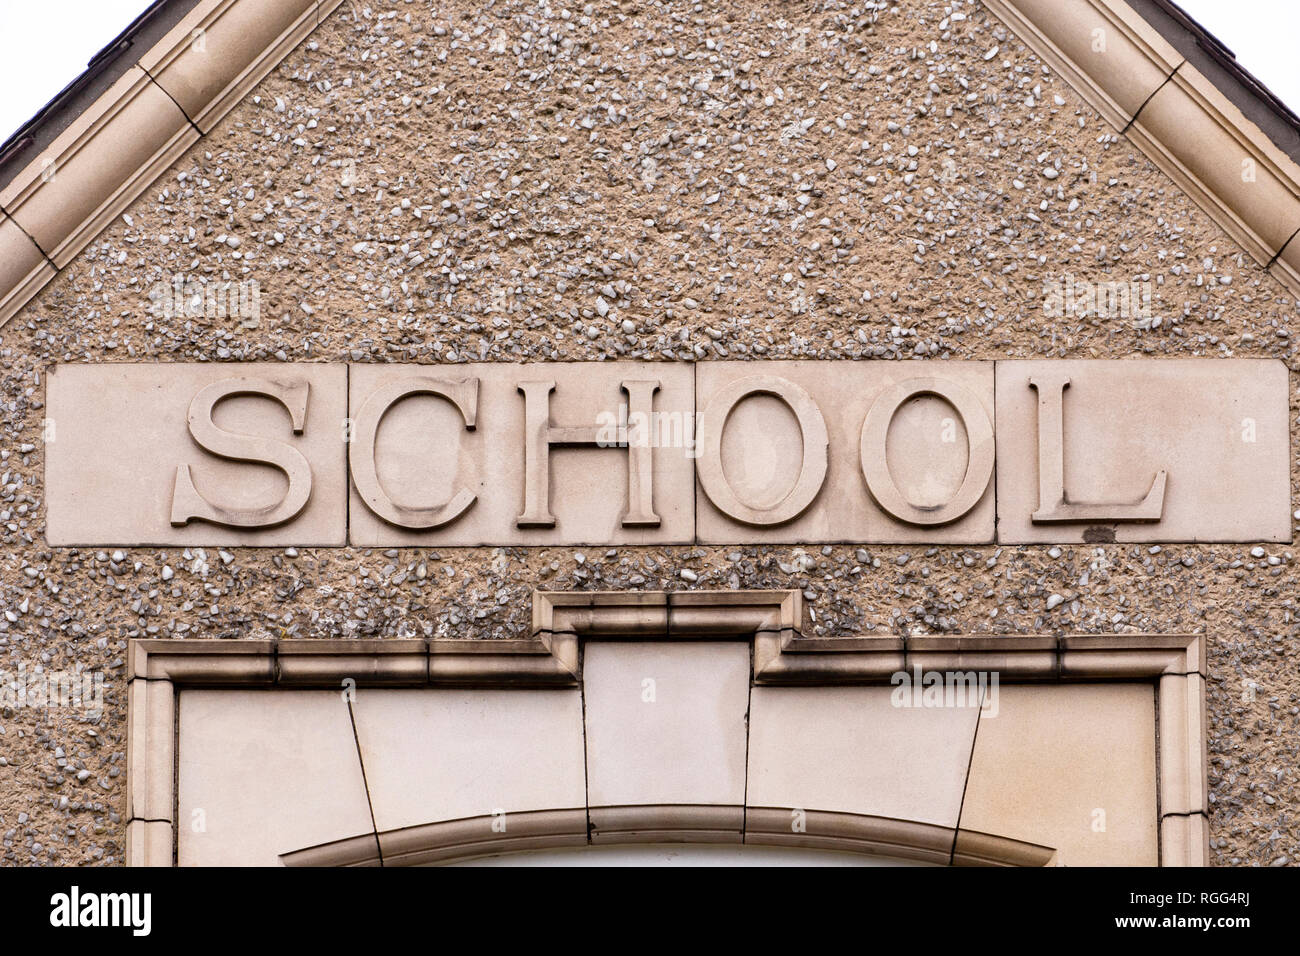 School lettering on outside wall - Stock Image